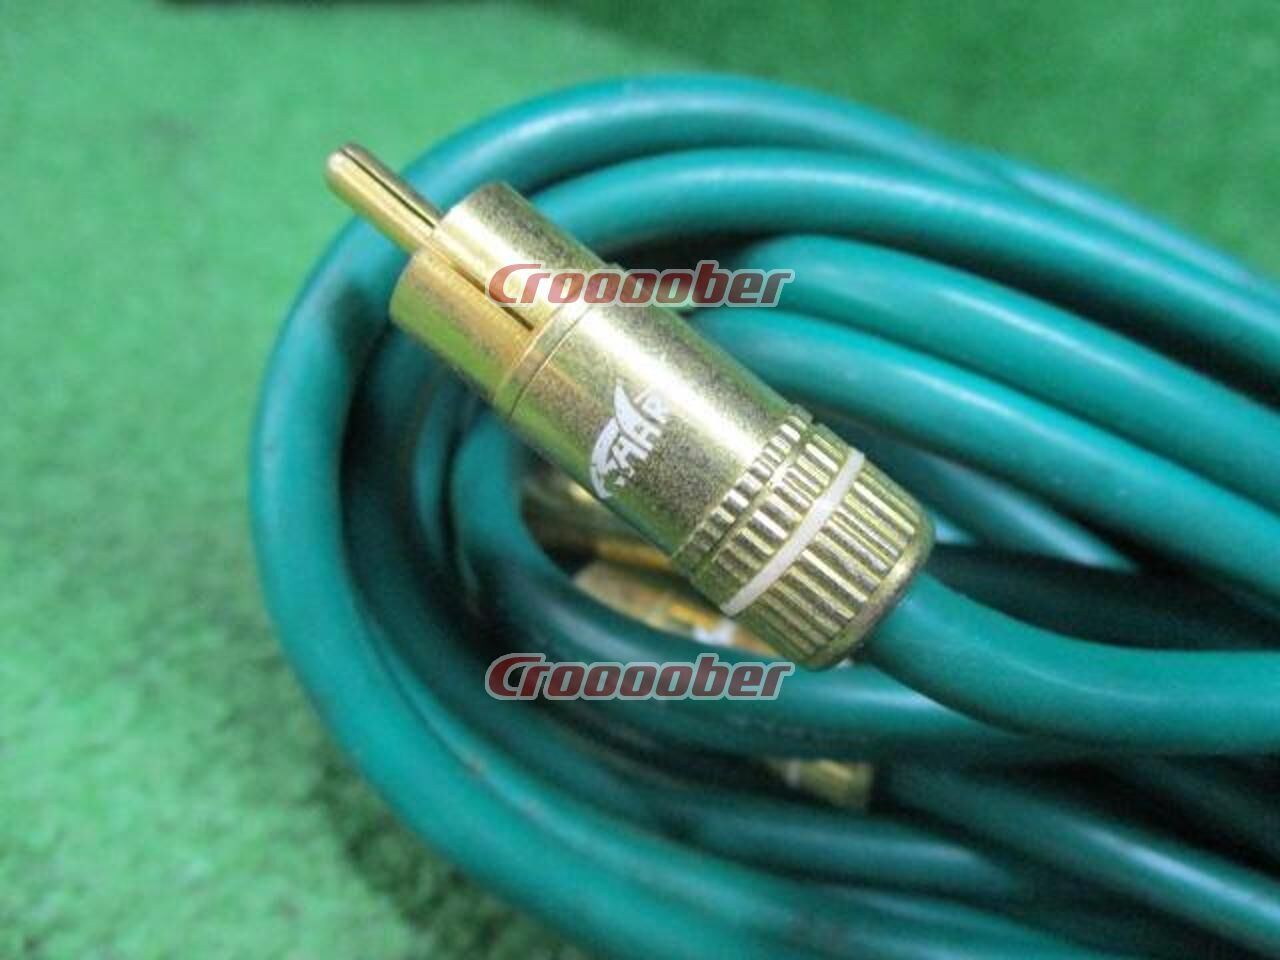 Shark Wire RCA Cable | Cables | Croooober